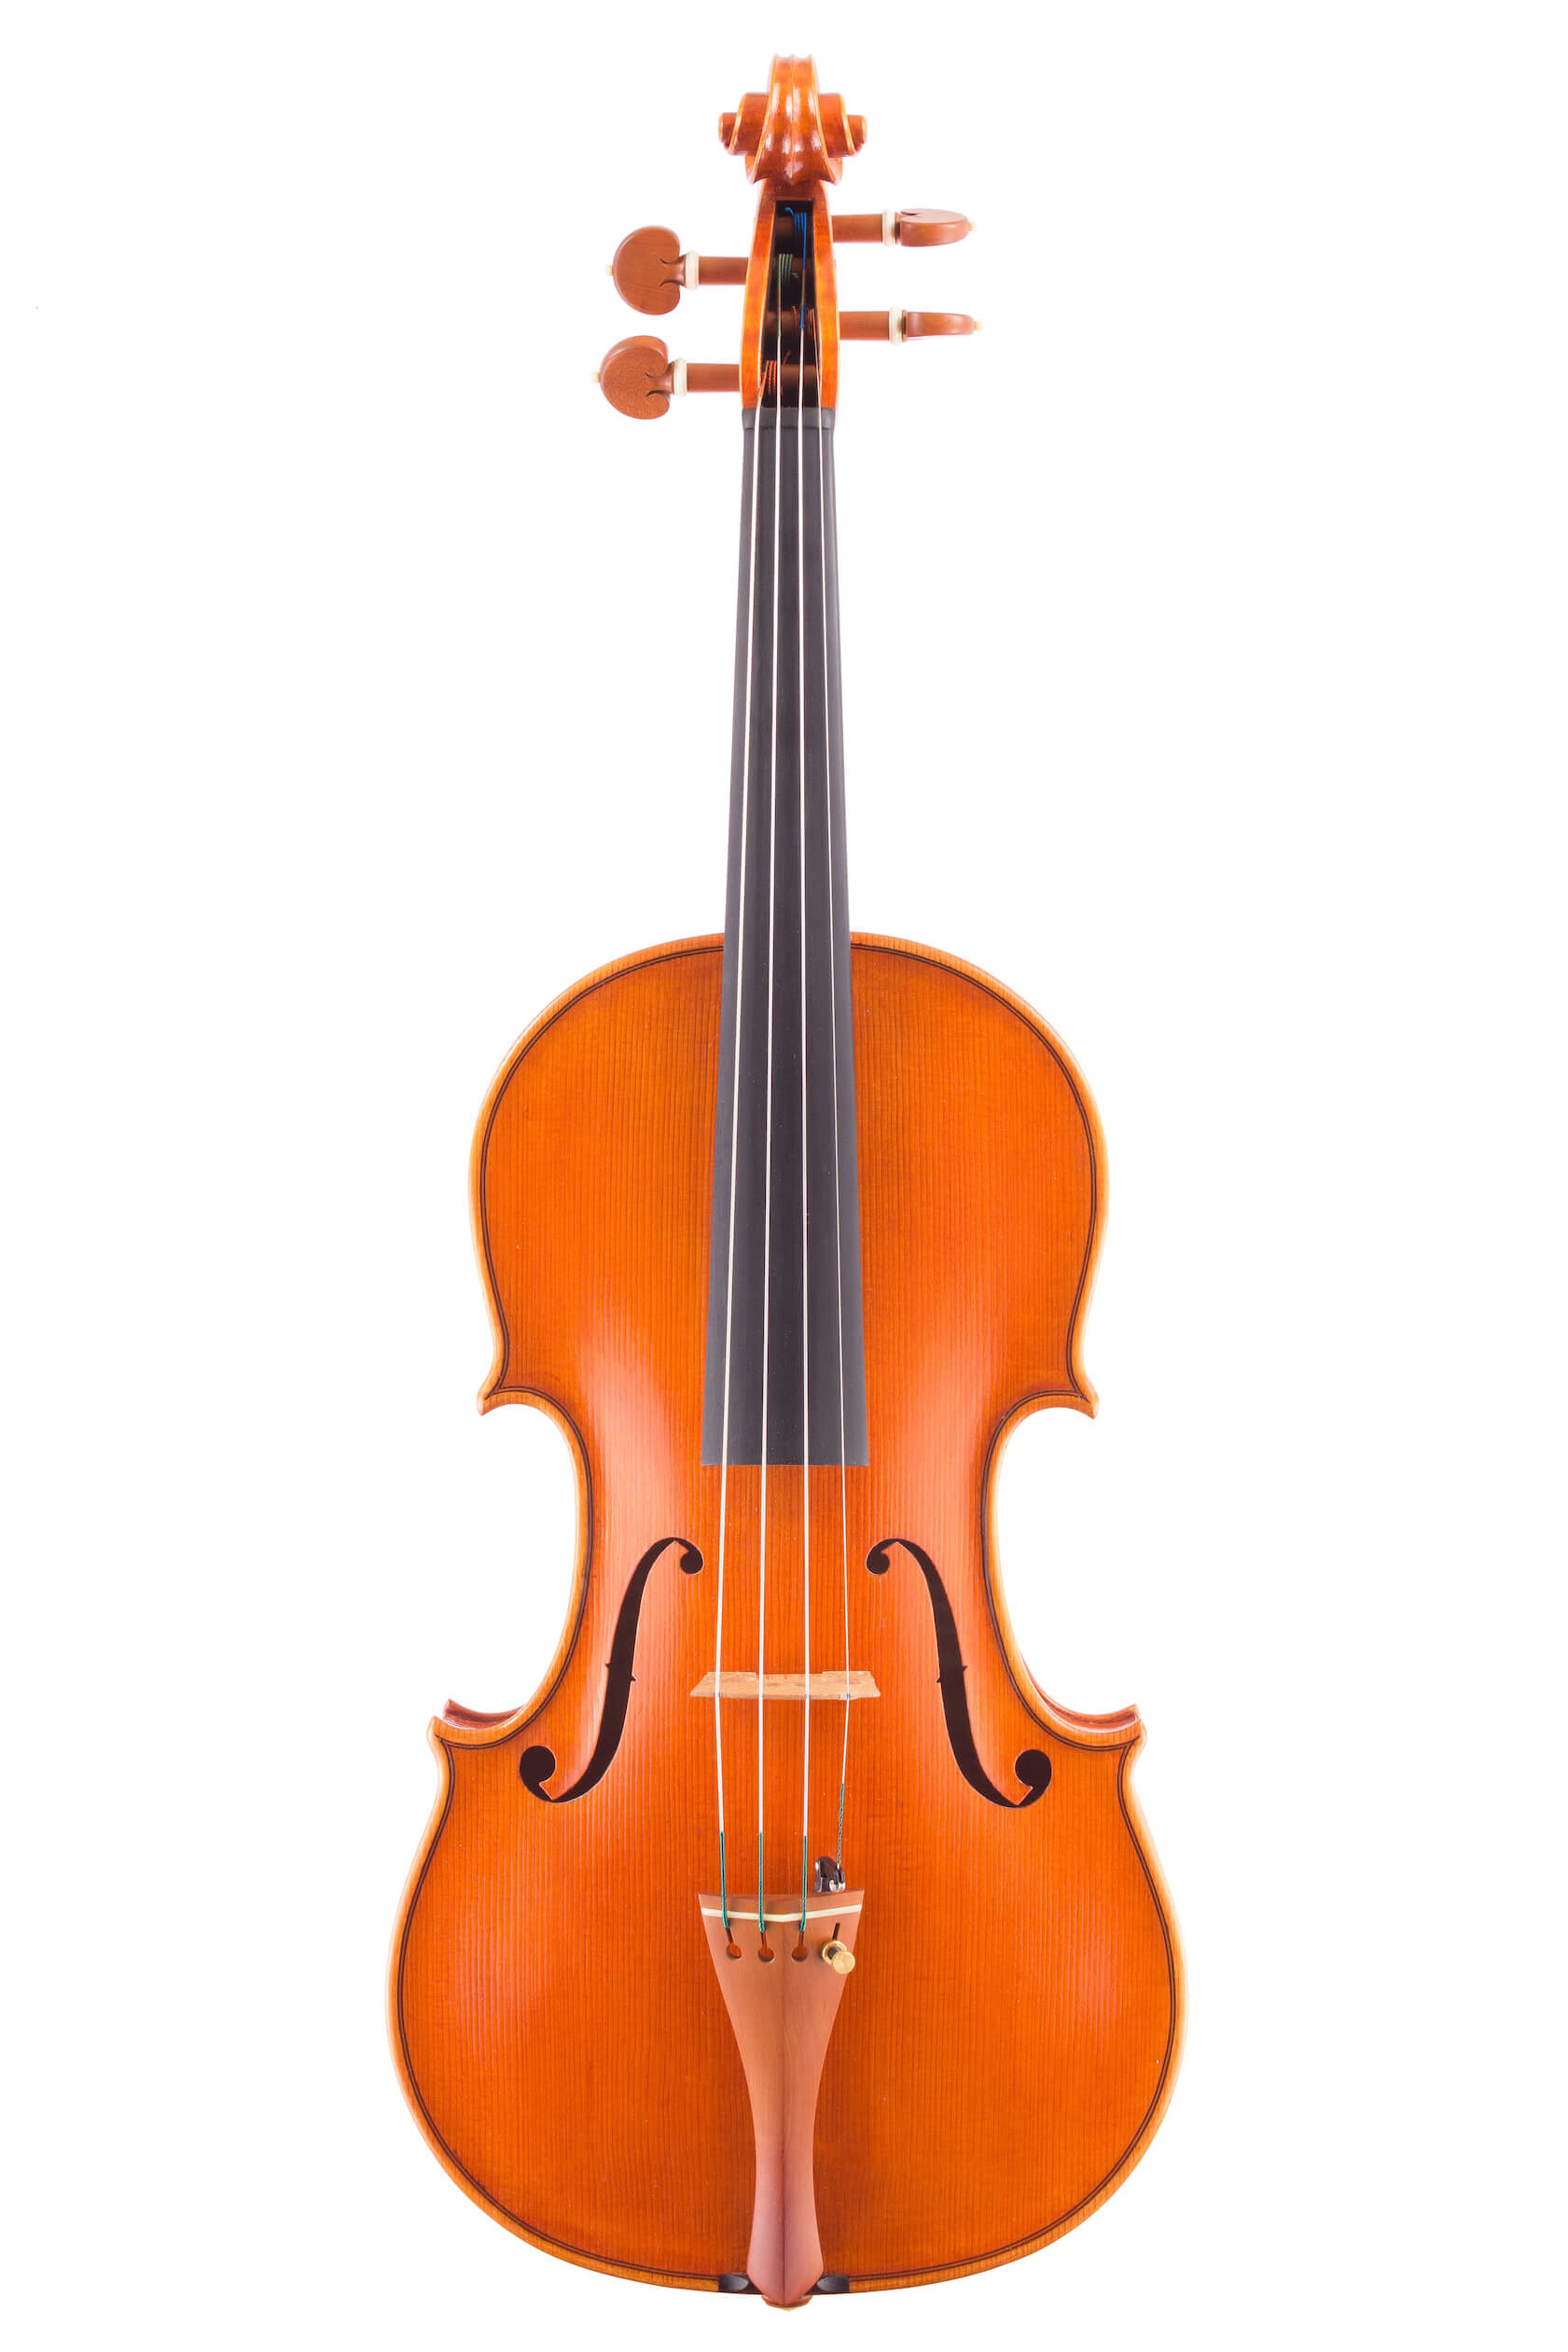 Violin by Luiz Amorim, 2016